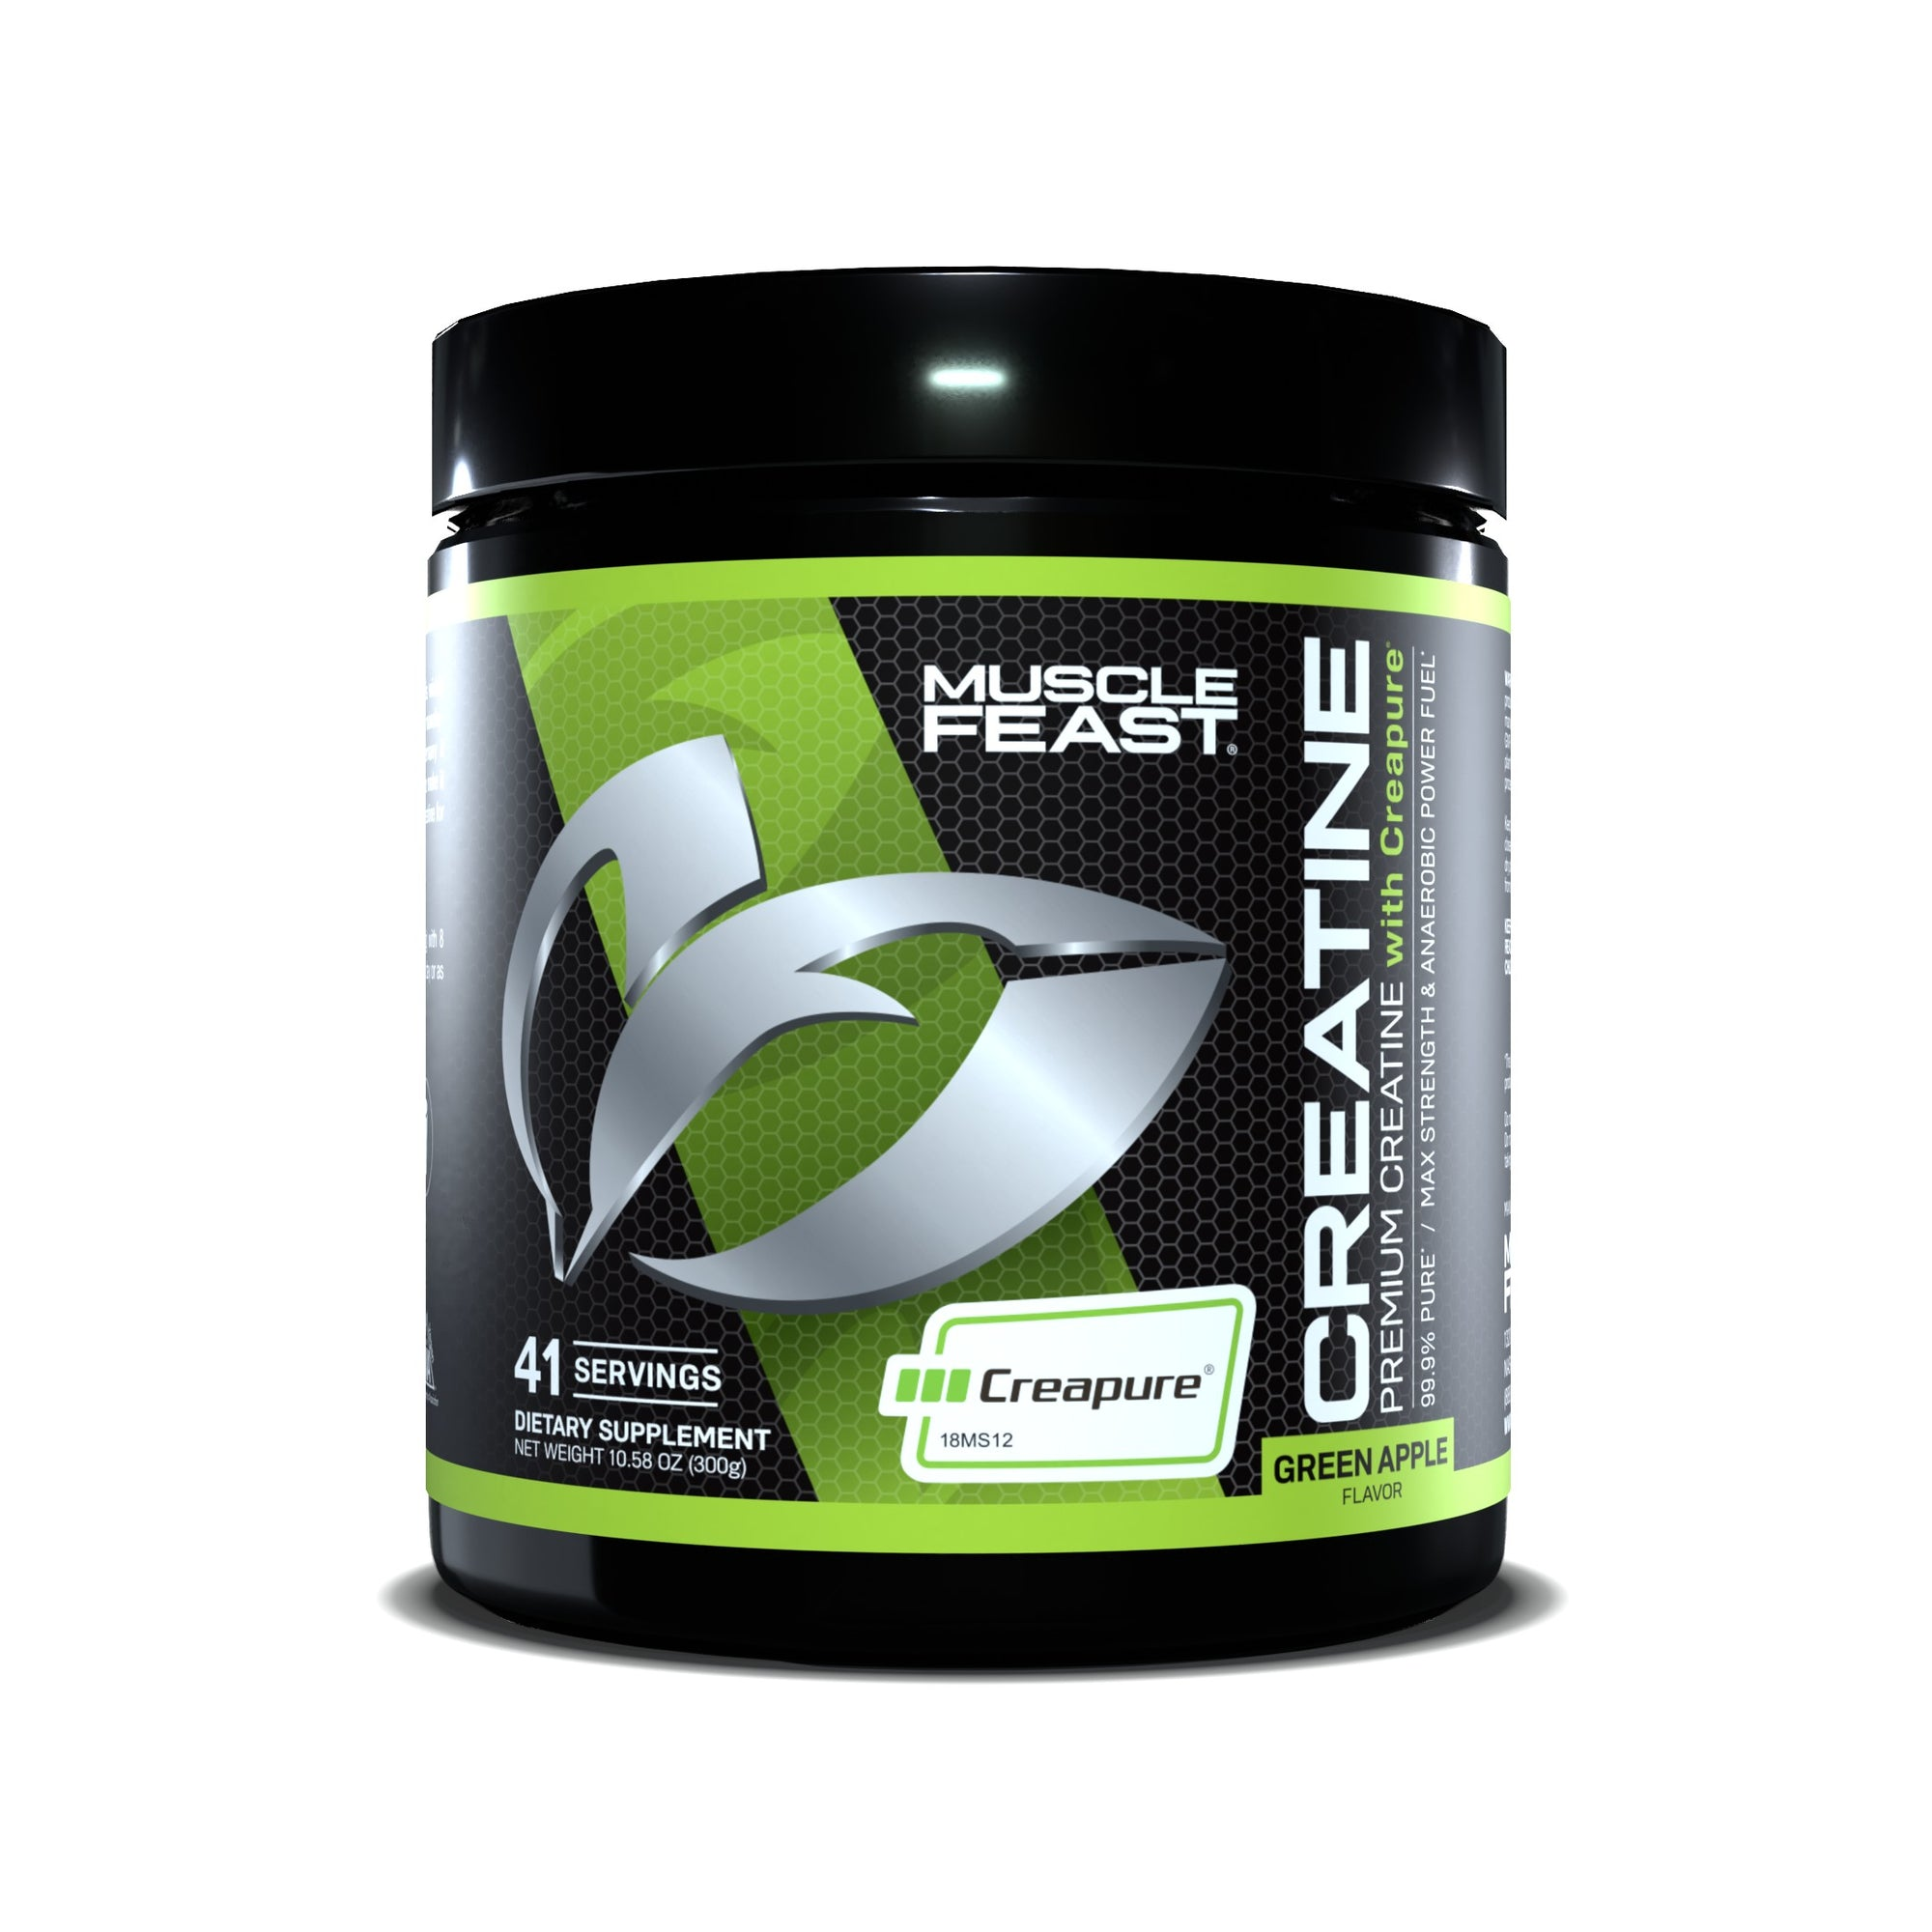 Creapure® Creatine Monohydrate by MUSCLE FEAST®